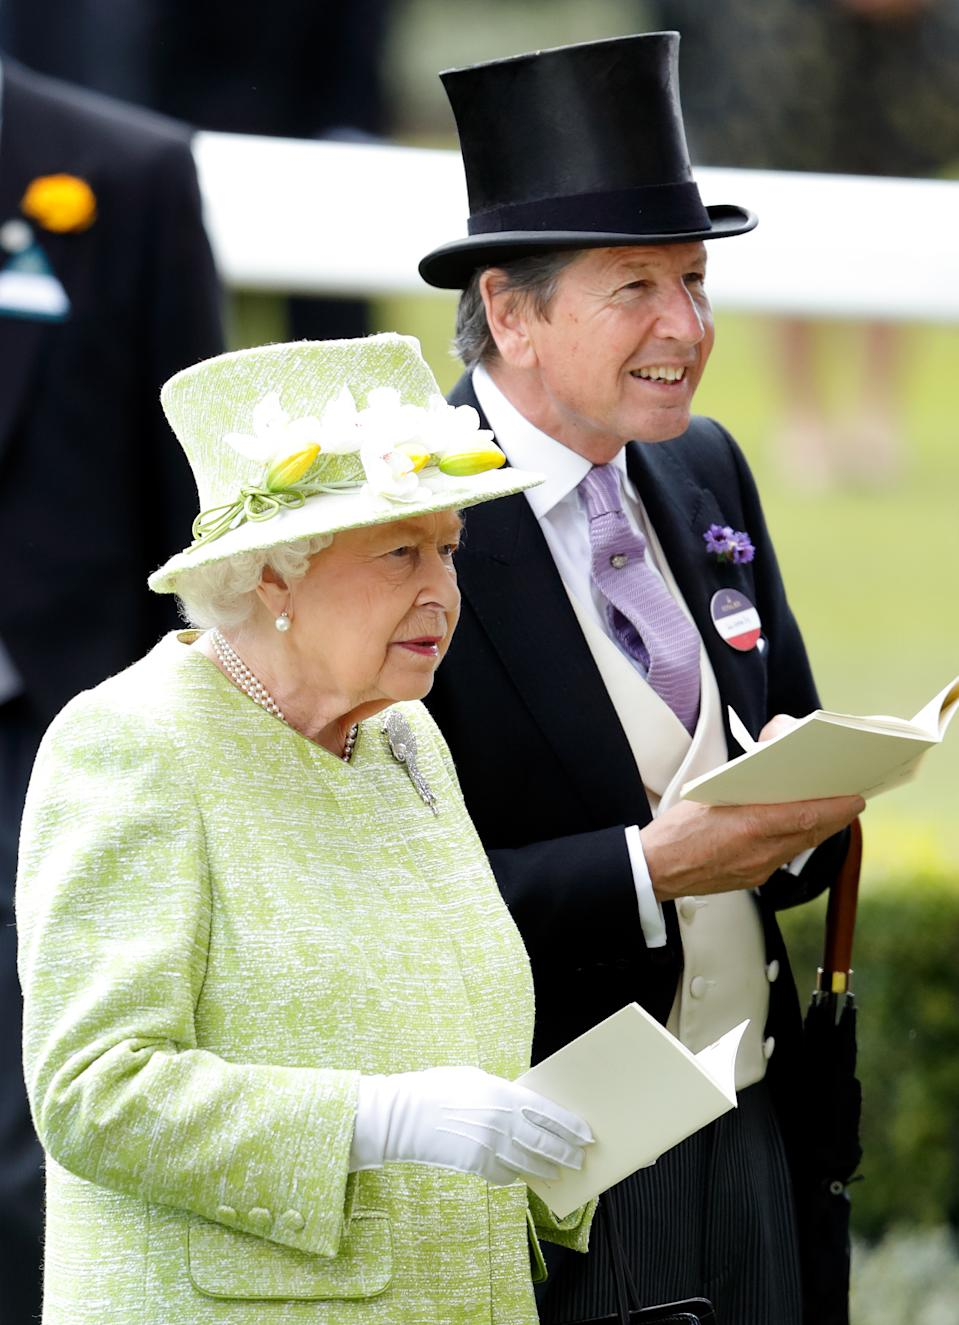 ASCOT, UNITED KINGDOM - JUNE 22: (EMBARGOED FOR PUBLICATION IN UK NEWSPAPERS UNTIL 24 HOURS AFTER CREATE DATE AND TIME) Queen Elizabeth II and John Warren attend day five of Royal Ascot at Ascot Racecourse on June 22, 2019 in Ascot, England. (Photo by Max Mumby/Indigo/Getty Images)